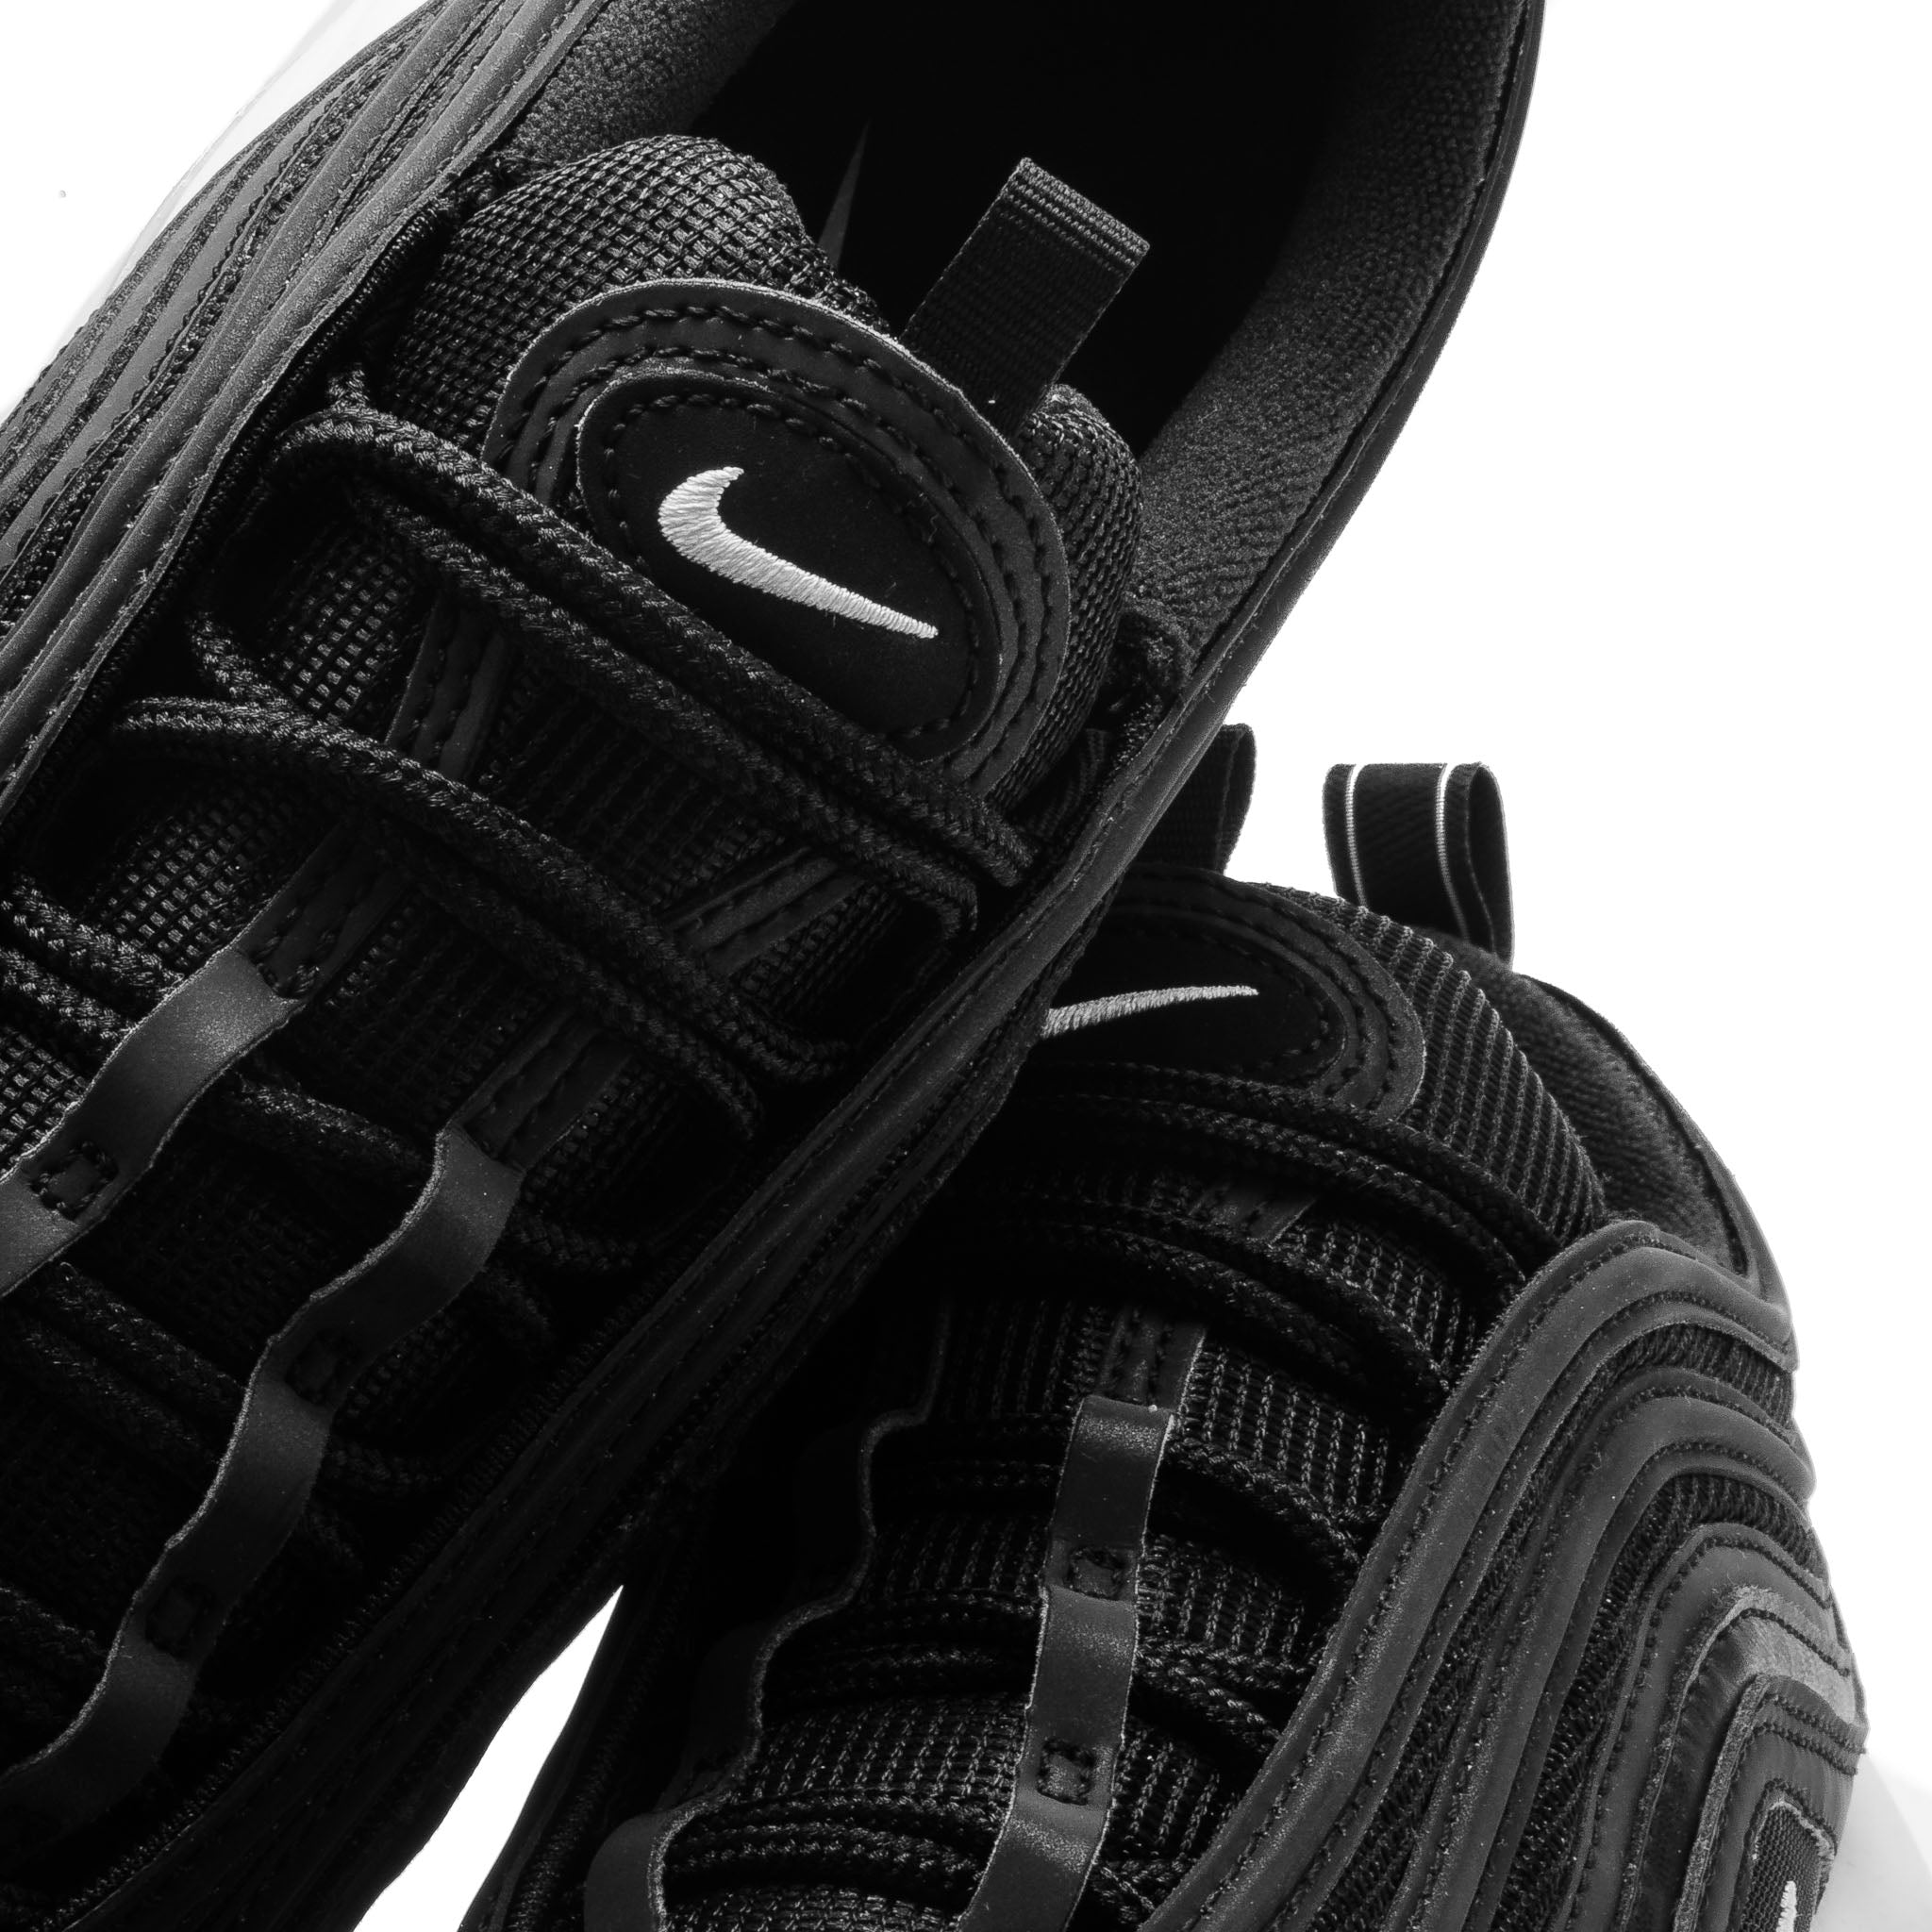 Air Max 97 921826-001 Black/White